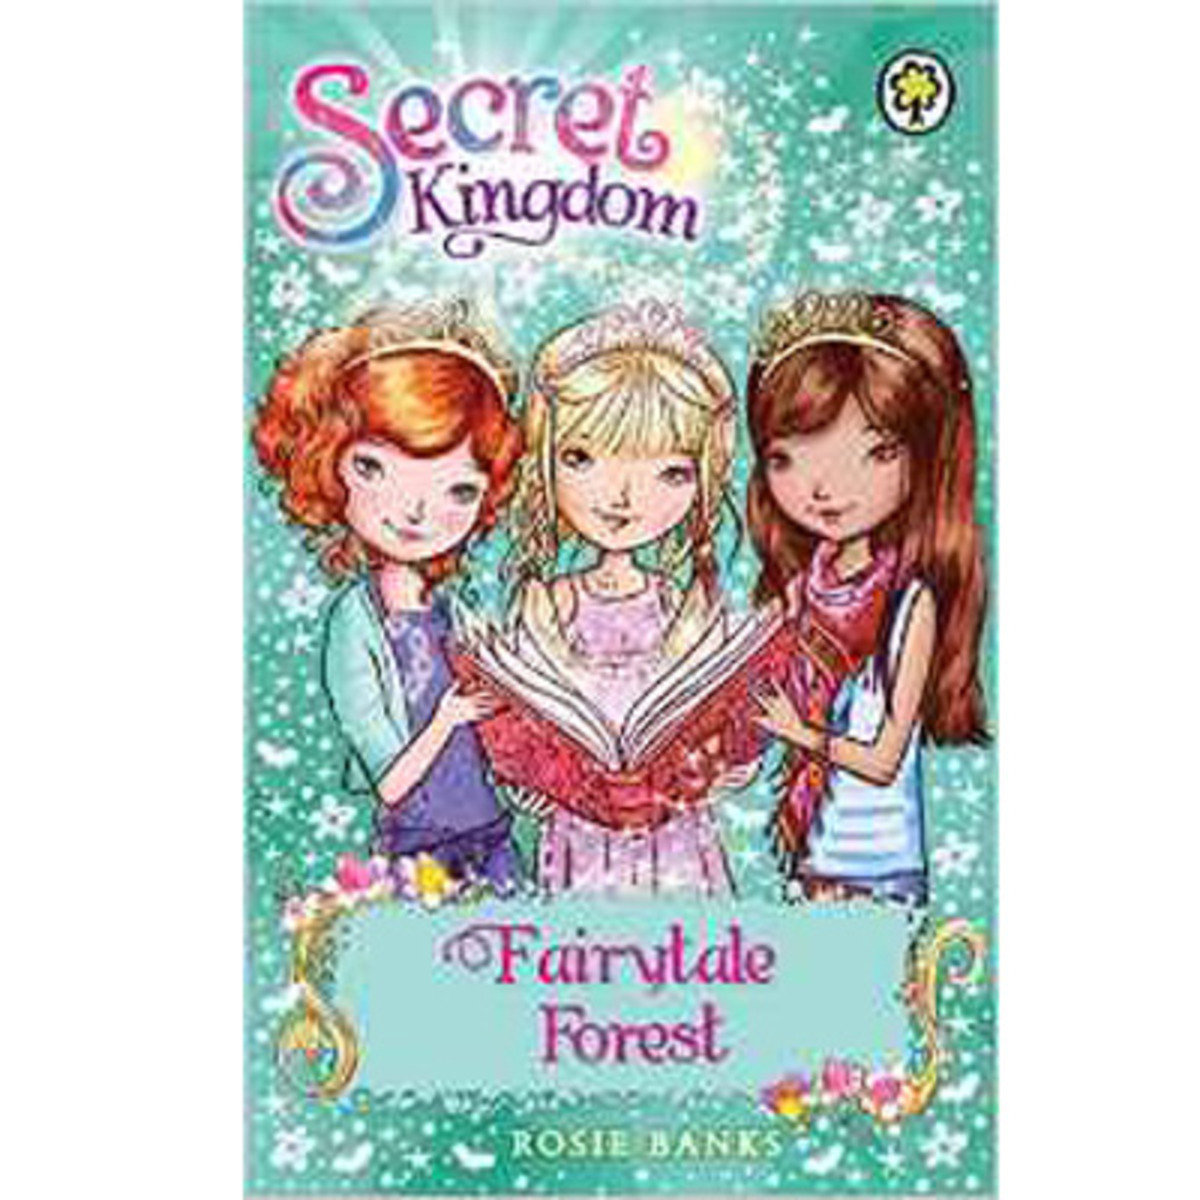 SECRET KINGDOM #11 FAIRYTALE FOREST 9781408323809